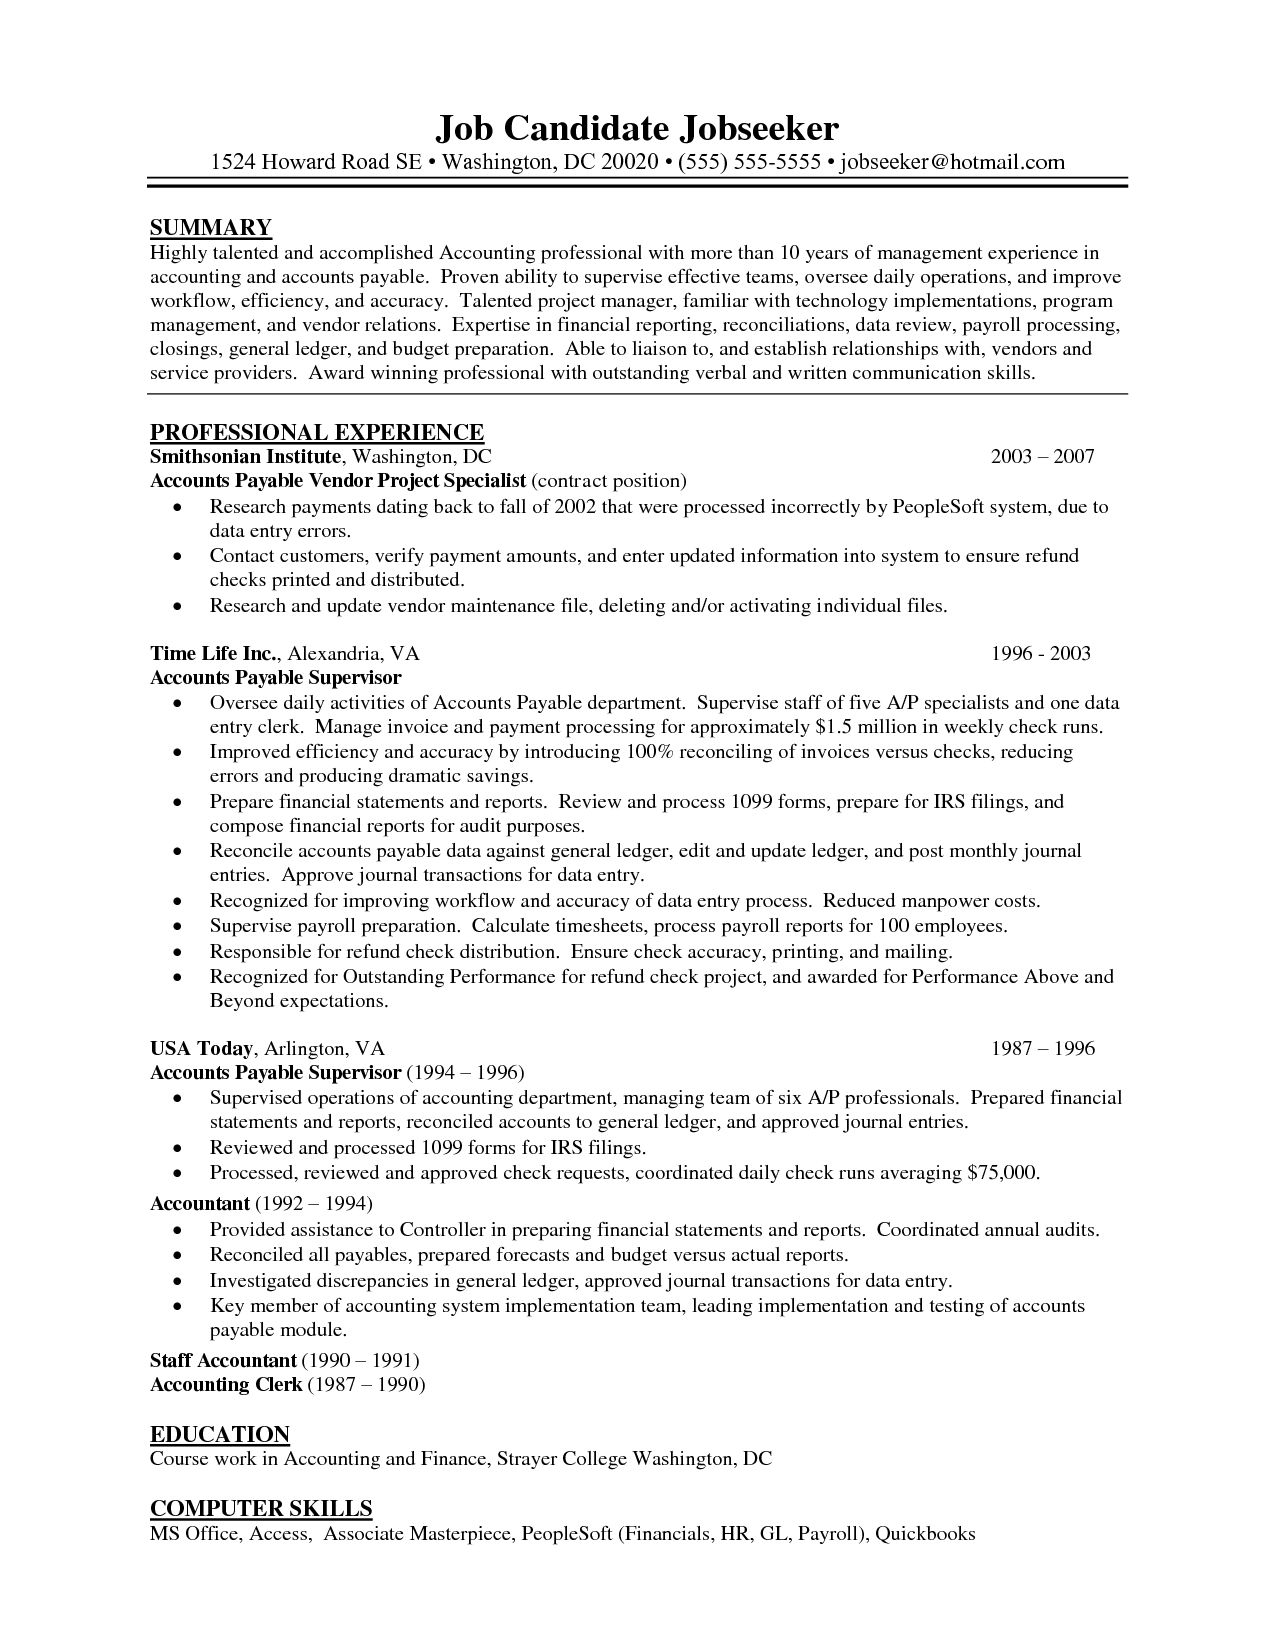 Accounts Payable Resume Samples Fair Resume Examples Accounts Payable  Pinterest  Resume Examples